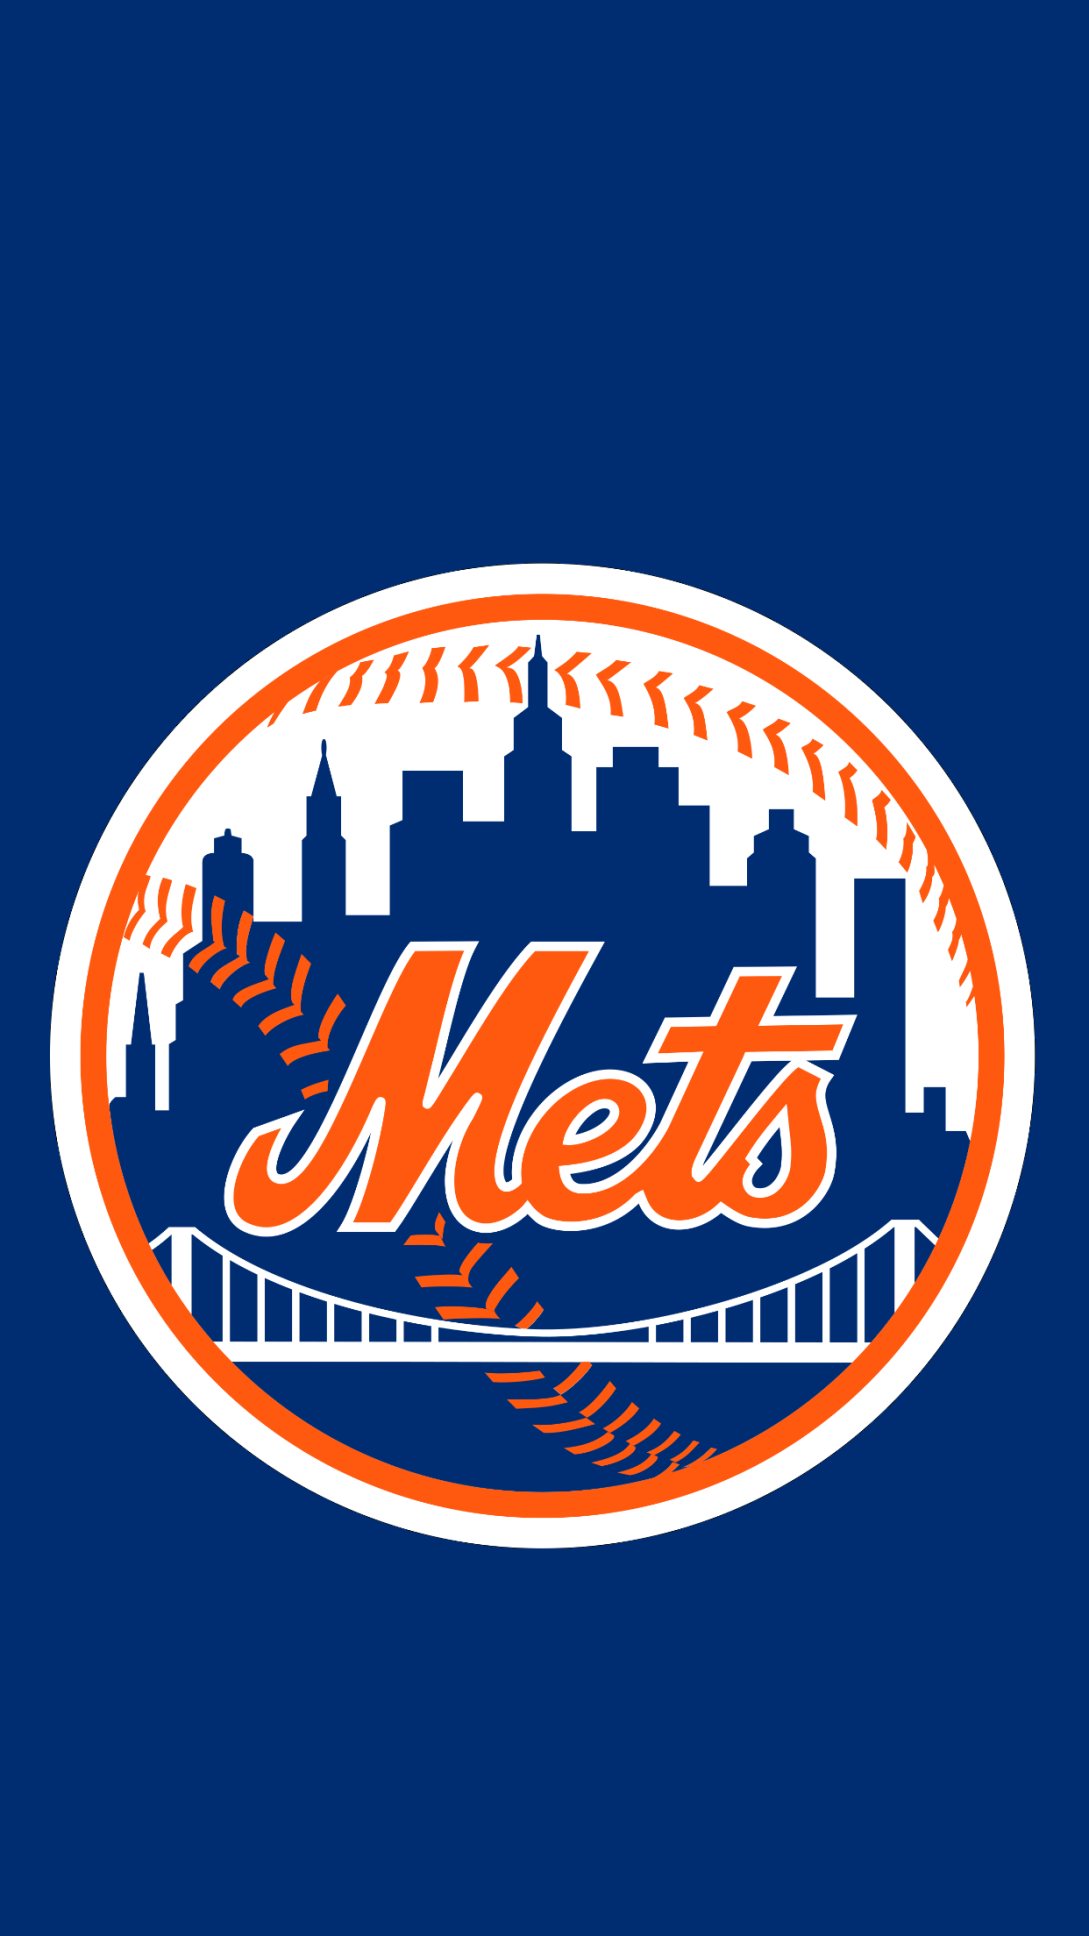 Pin By Sluricain On Baseball Logos Art New York Mets Baseball Chicago Cubs Logo New York Mets